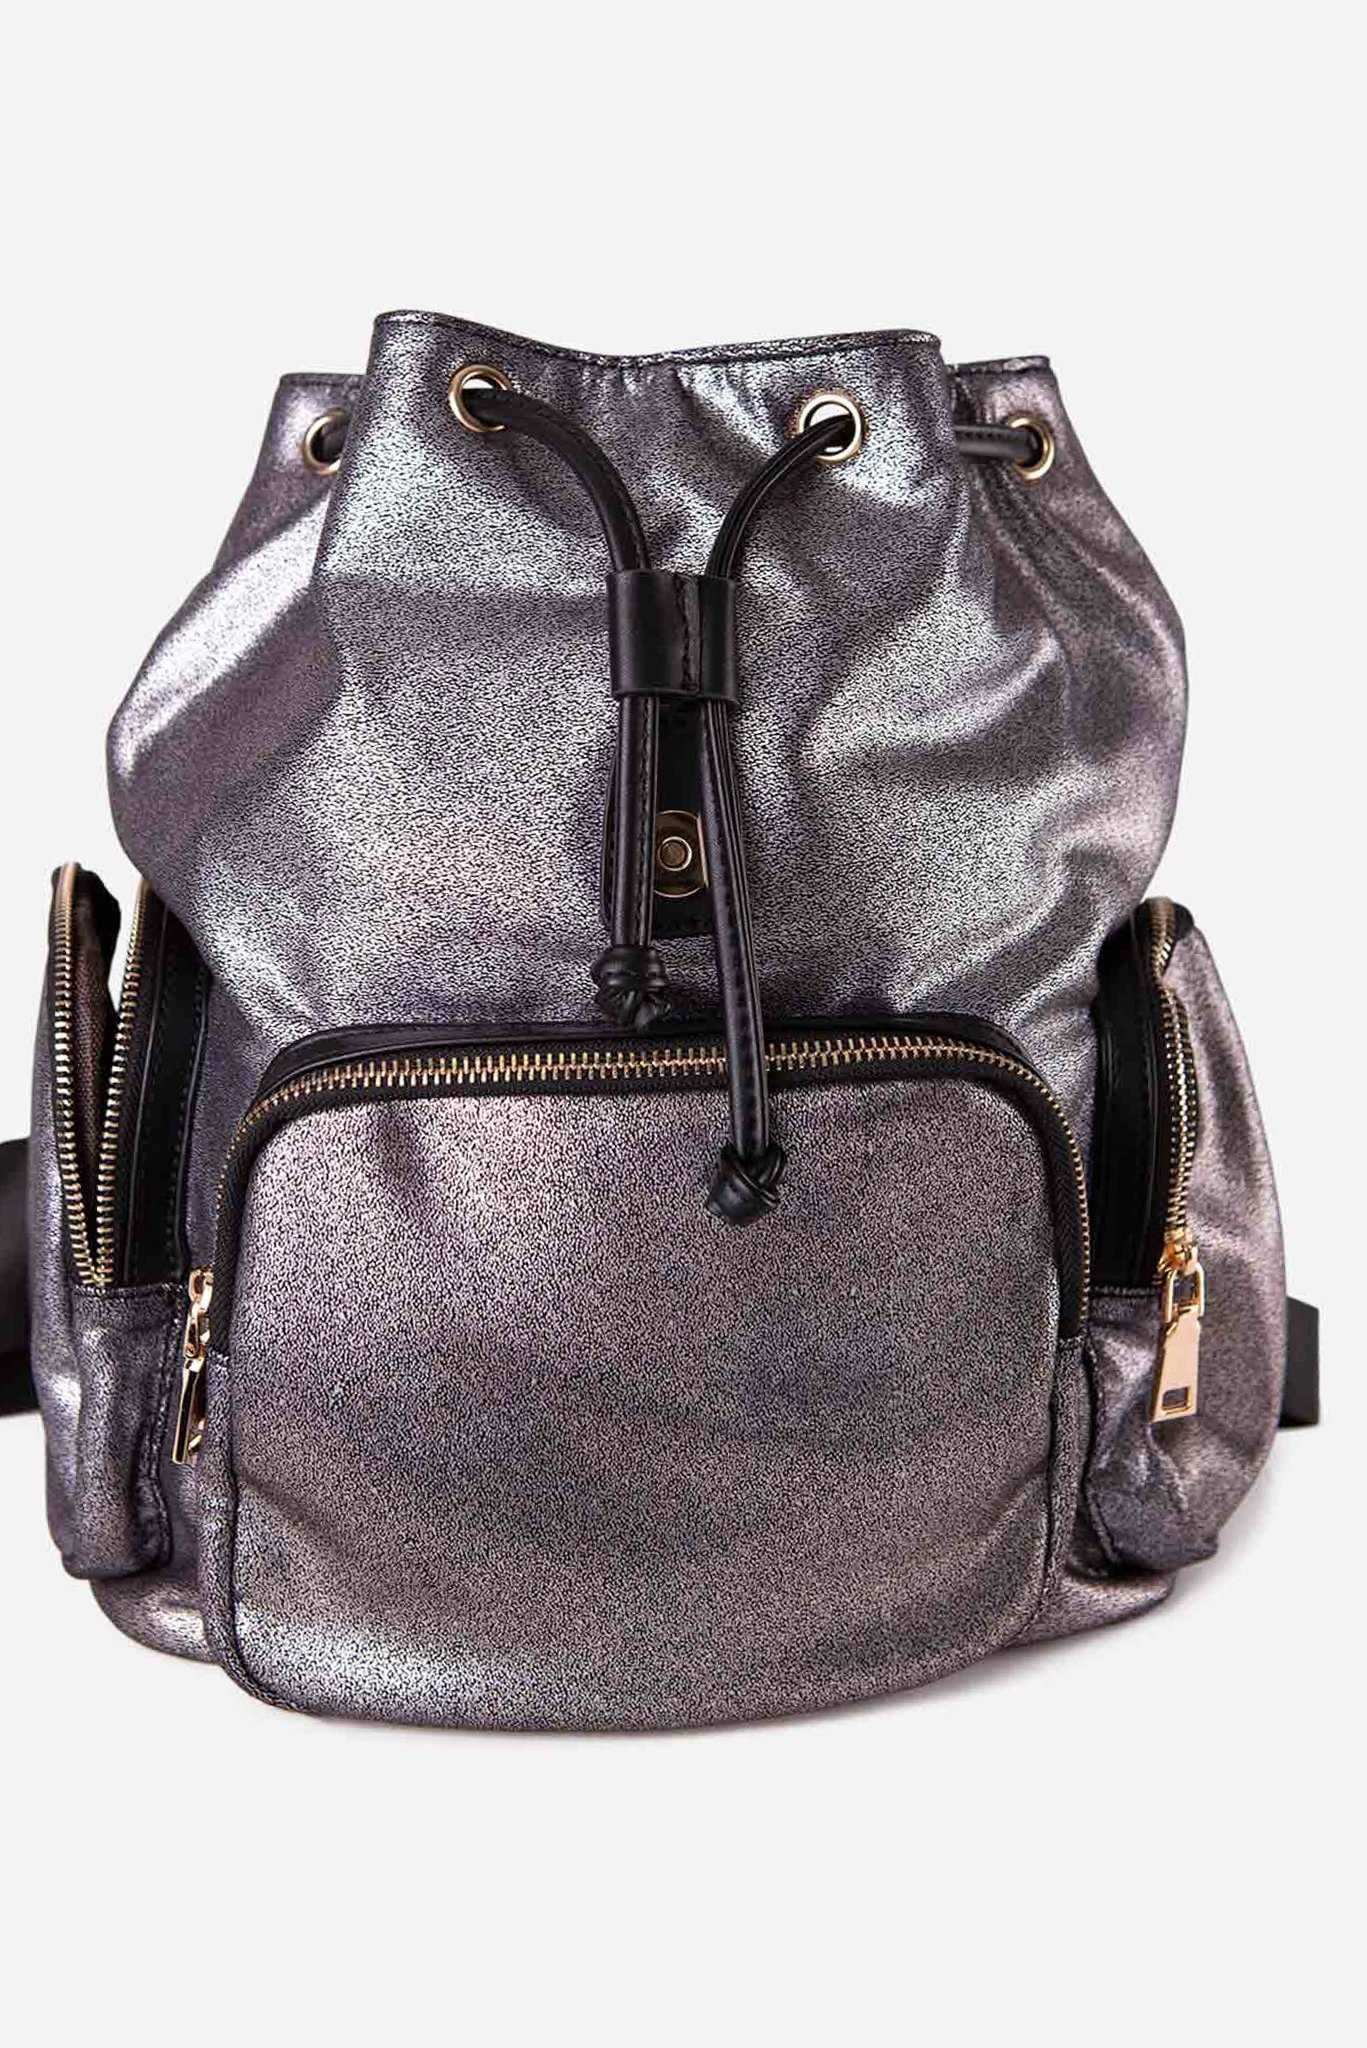 Backpack - Metallic | Raw Orange